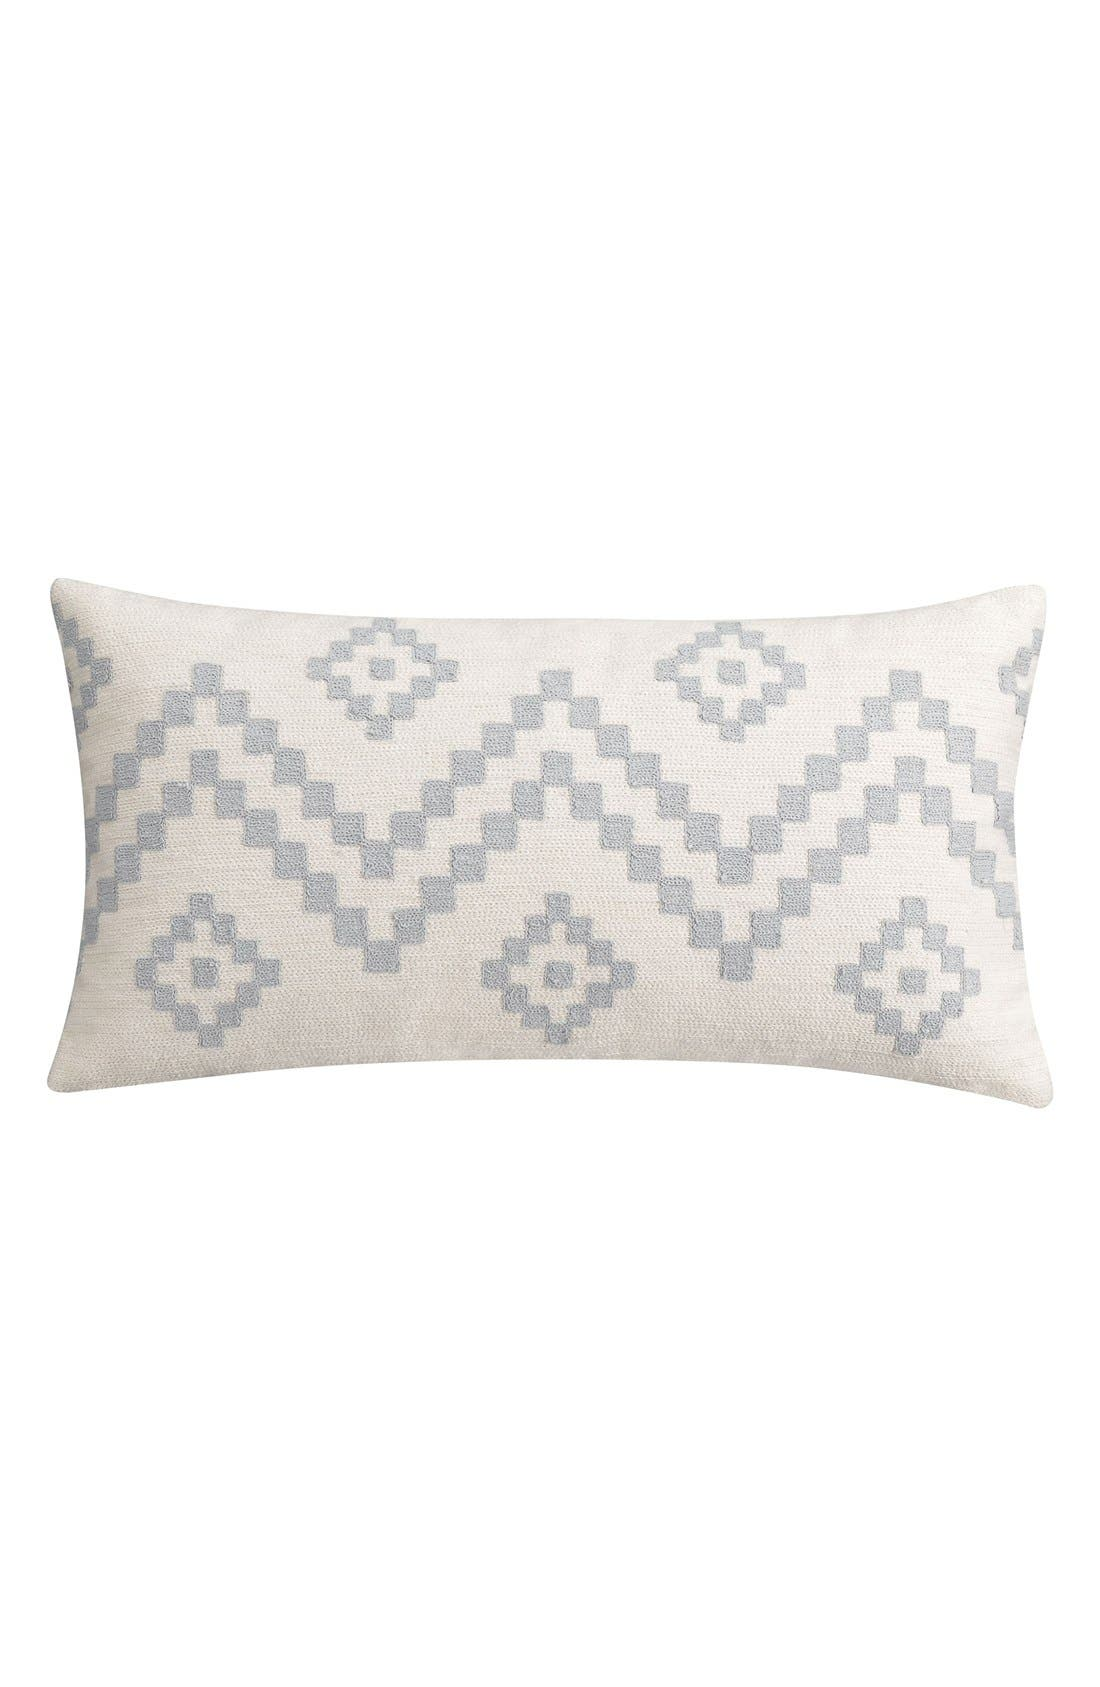 Main Image - cupcakes and cashmere 'Klim' Crewel Embroidered Accent Pillow